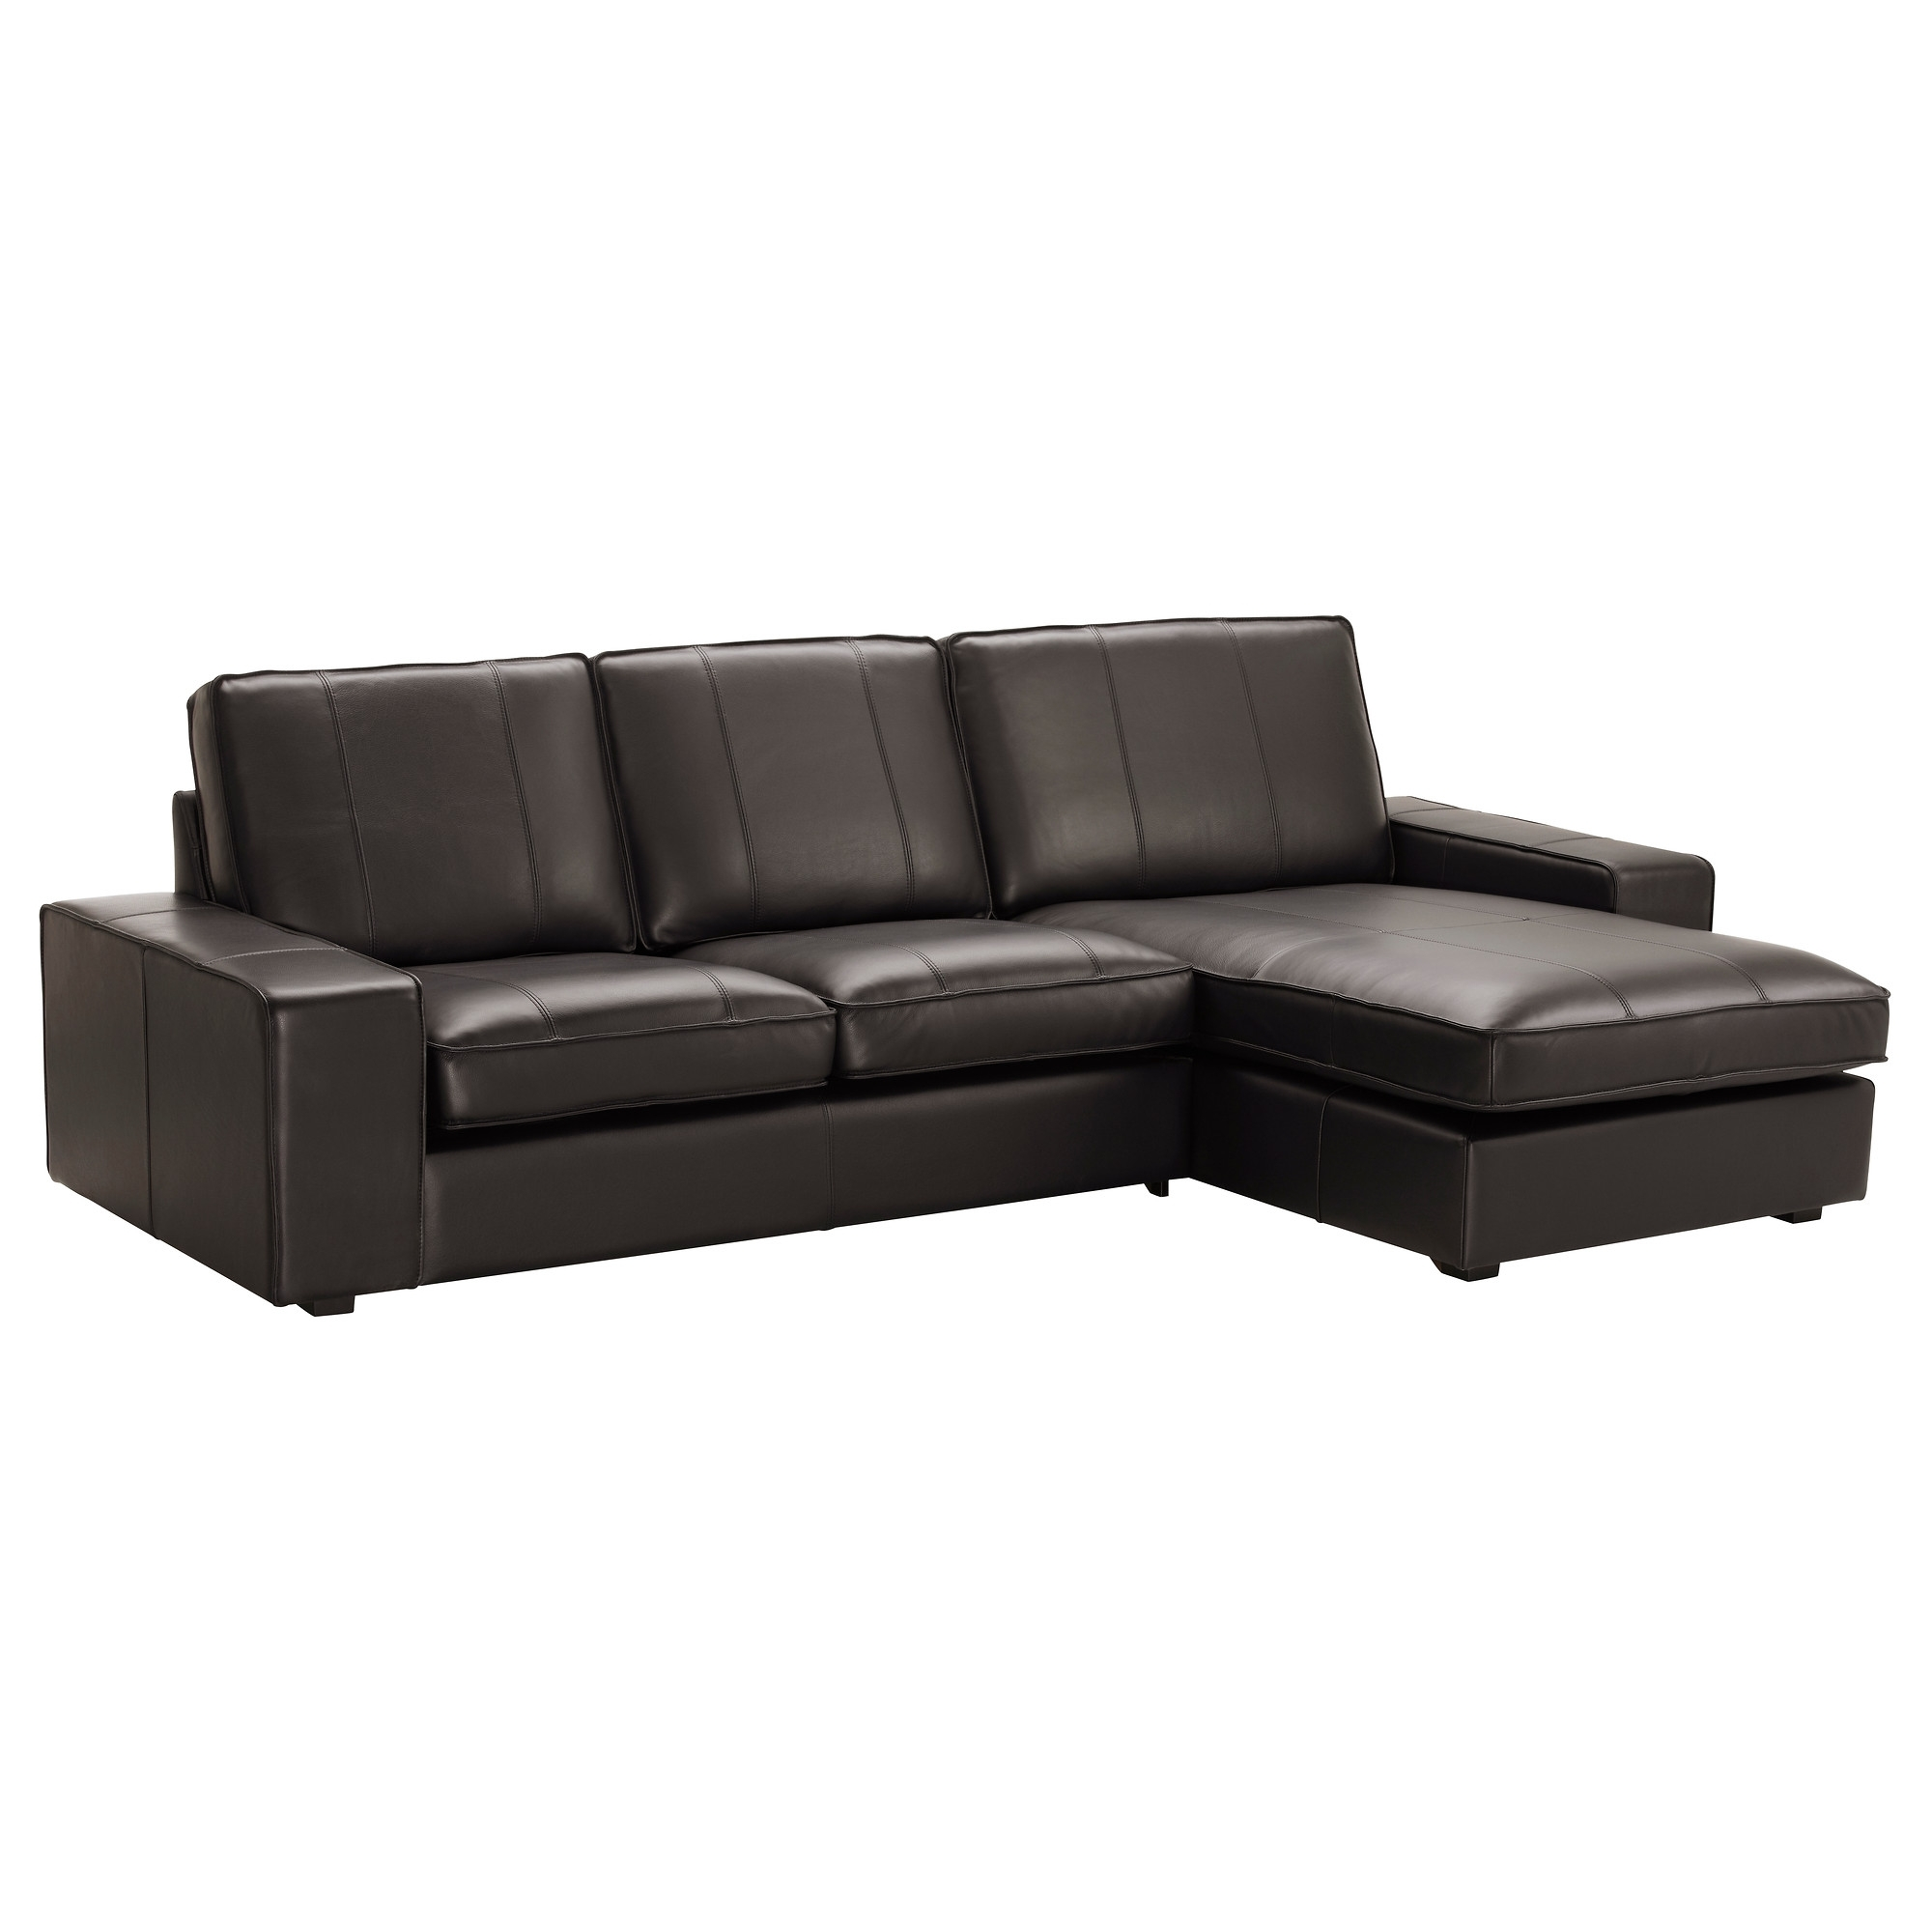 Favorite Ikea Sofa Beds With Chaise In Kivik Sofa – With Chaise/grann/bomstad Black – Ikea (View 13 of 15)